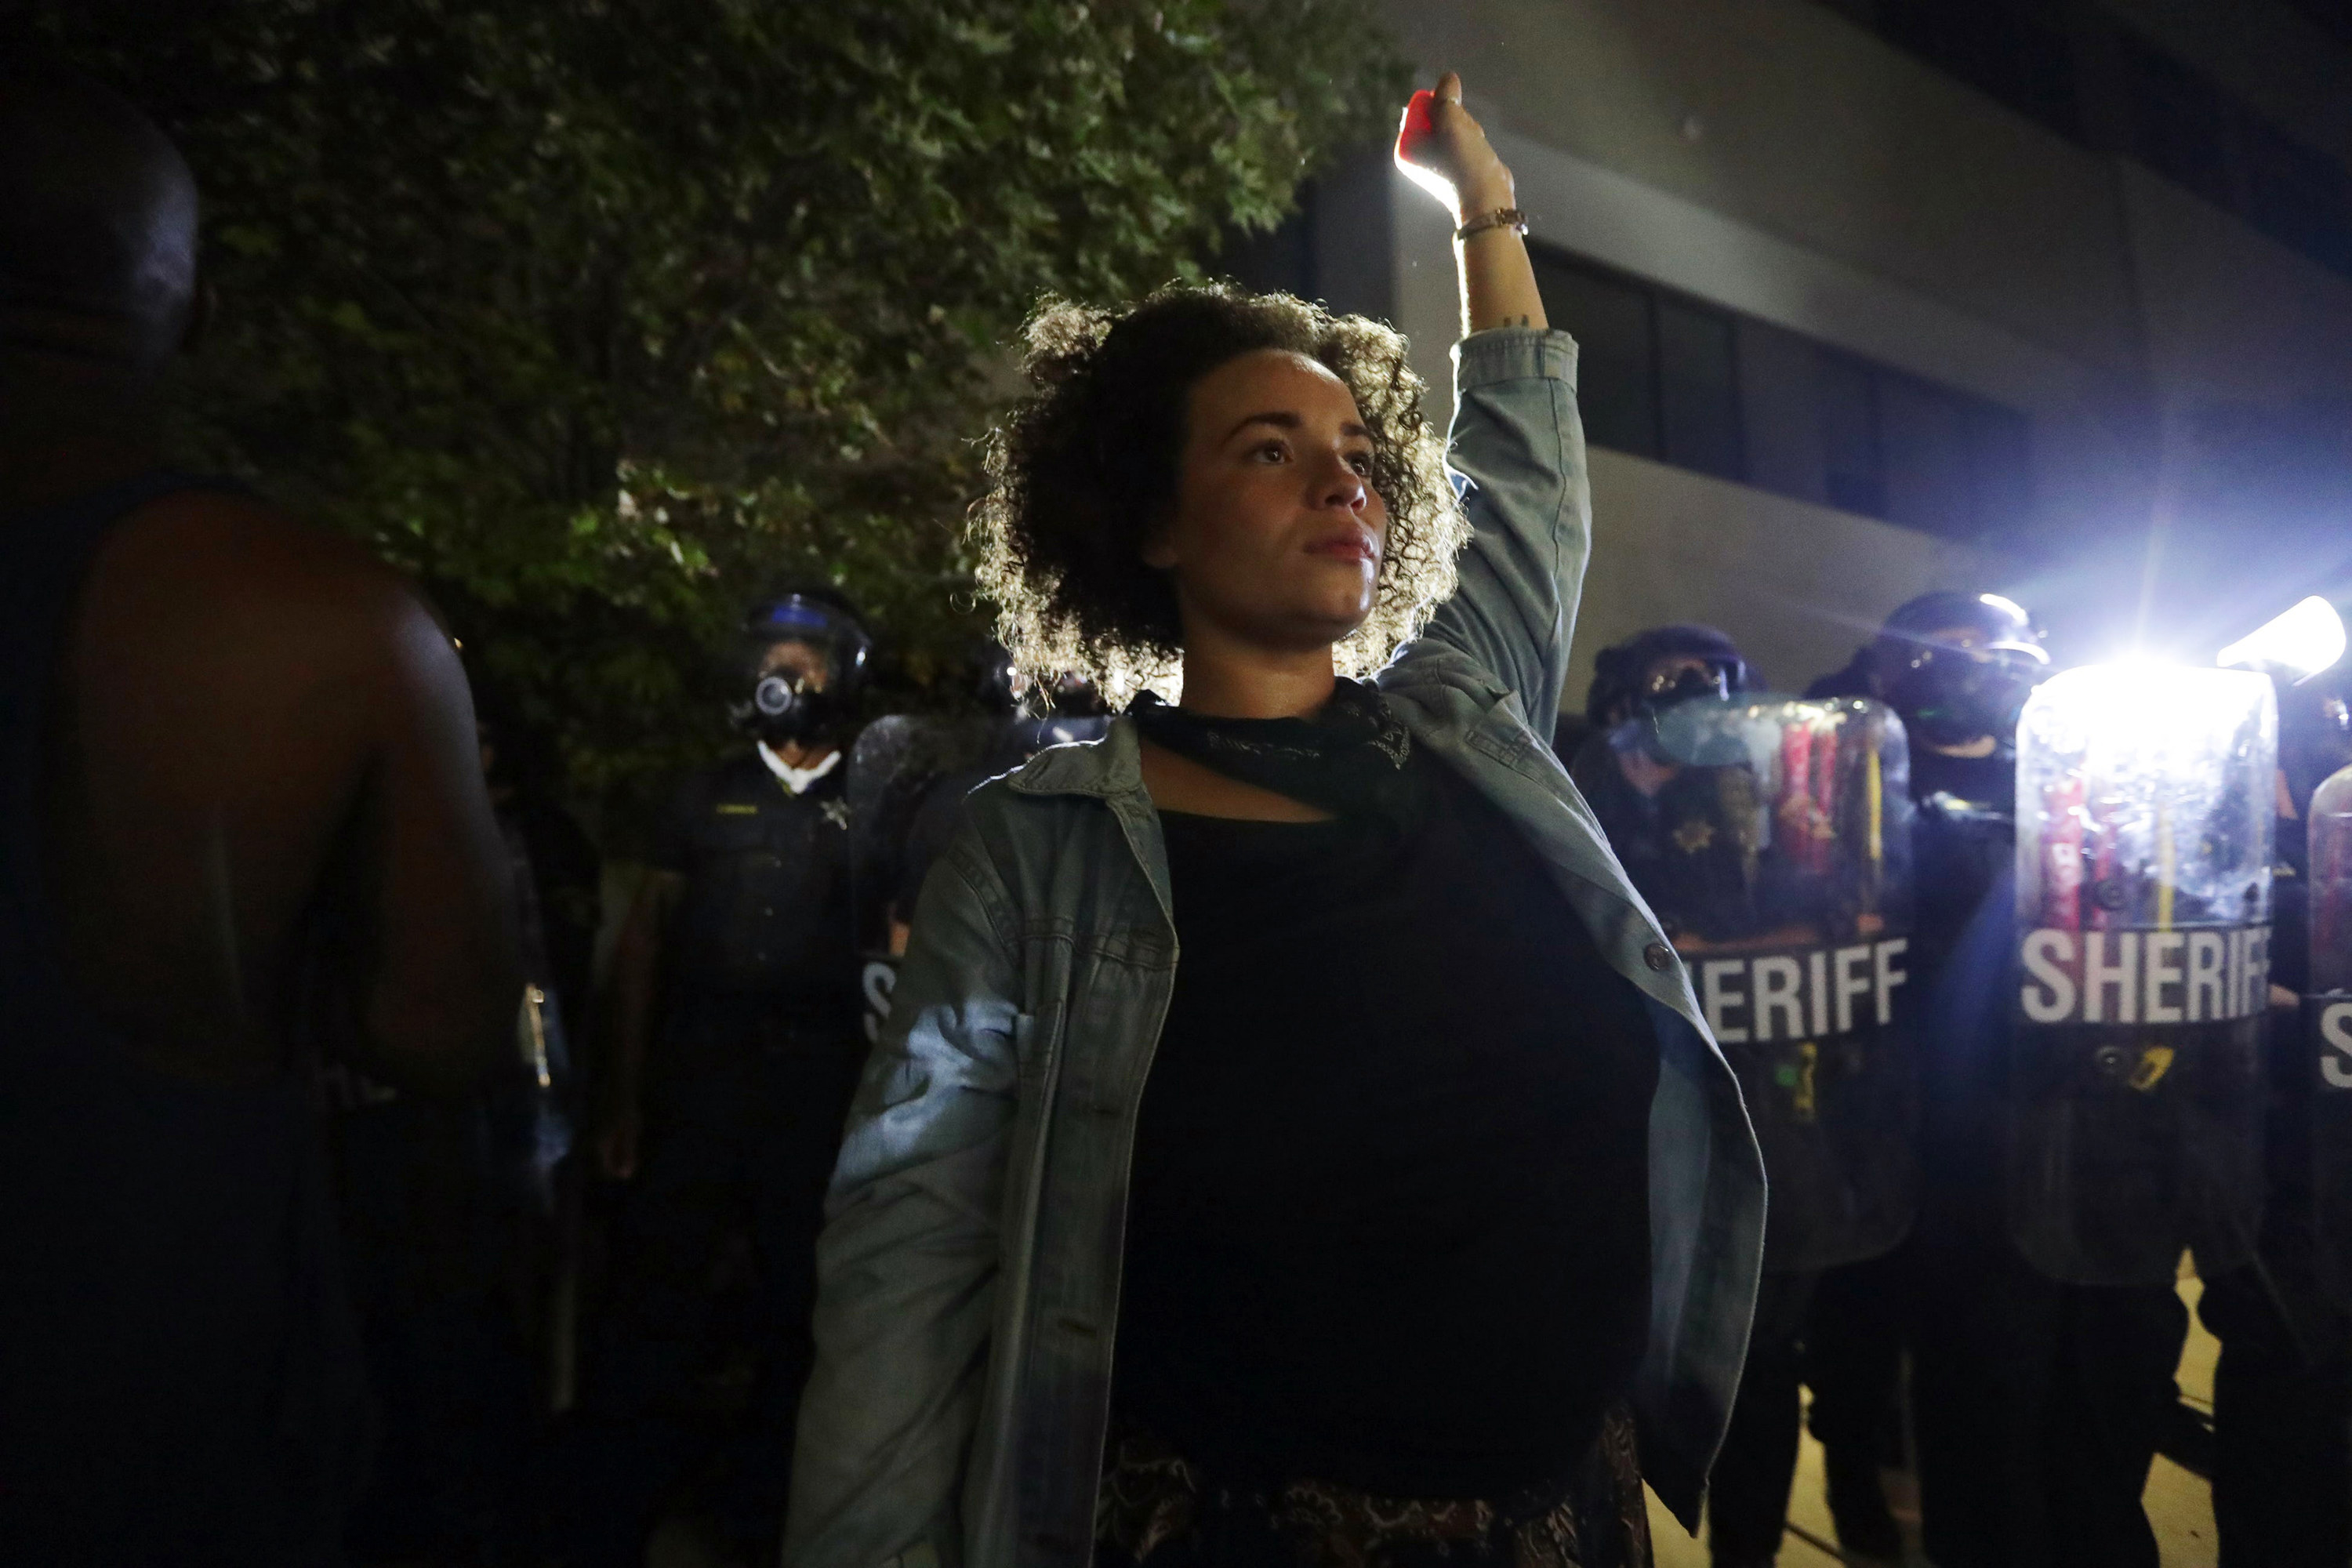 A woman holds her fist up in the air in front of a crowd of police